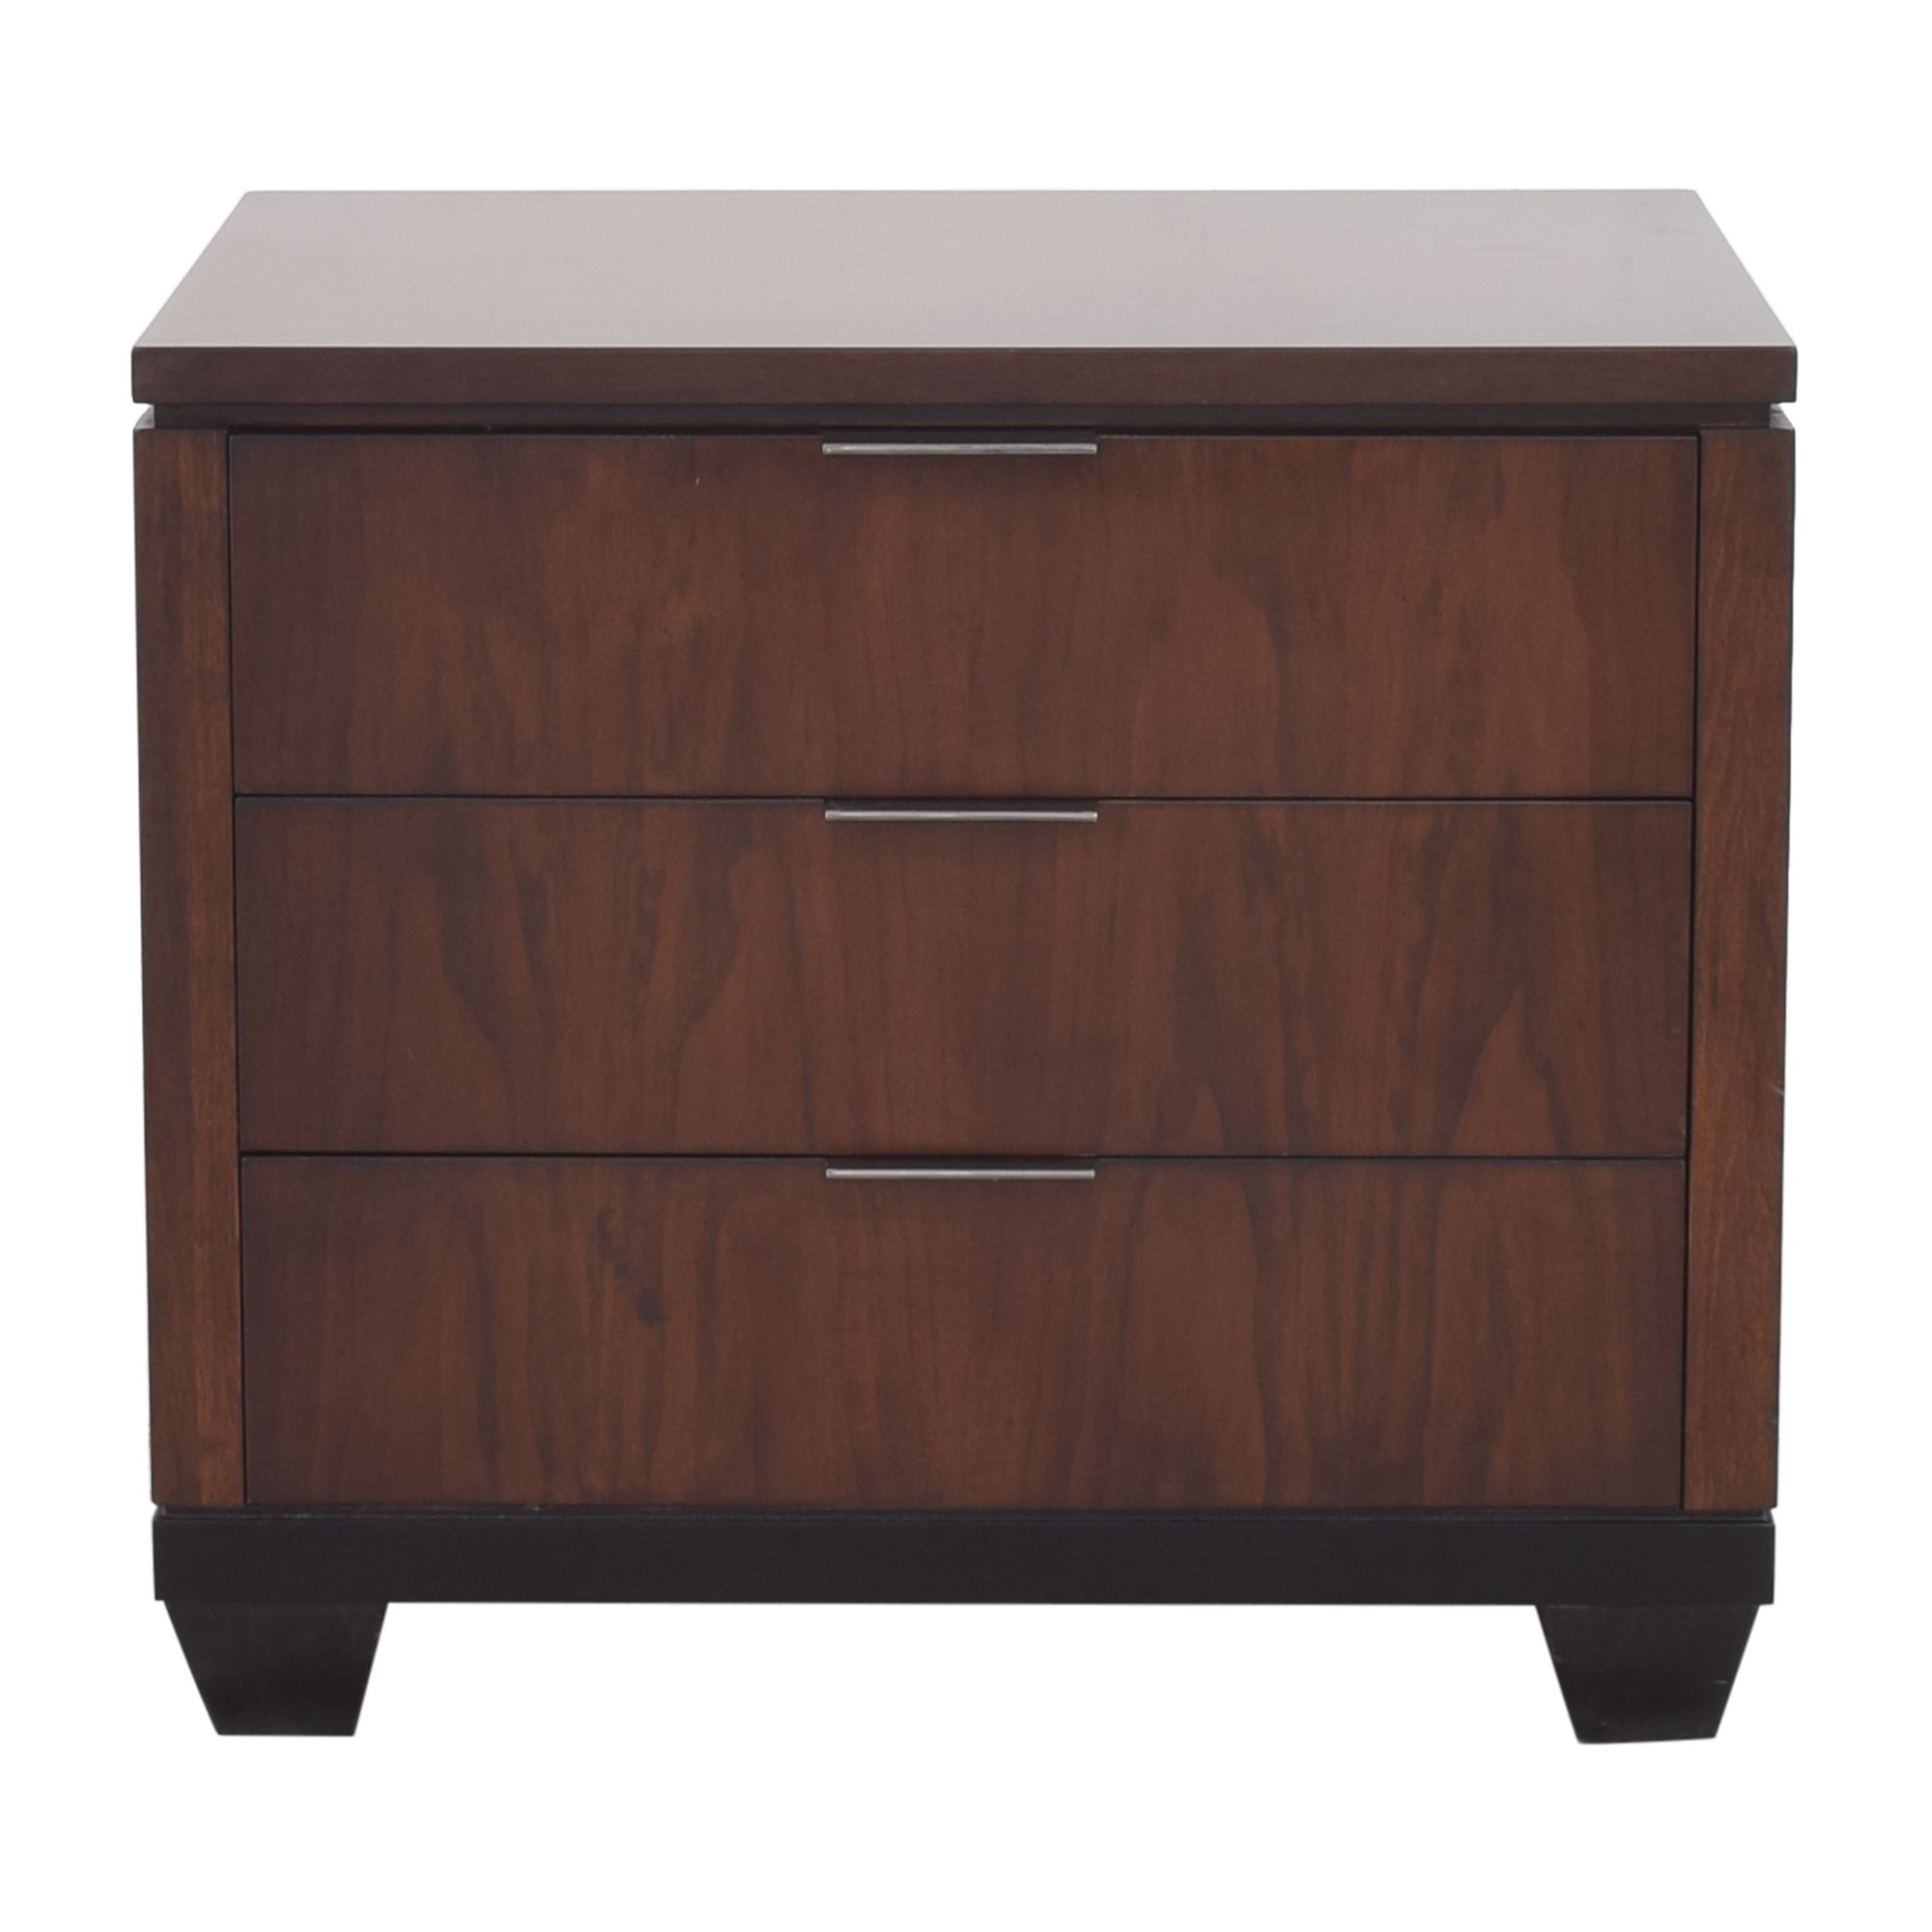 Macy's Macy's Three Drawer Nightstand ma